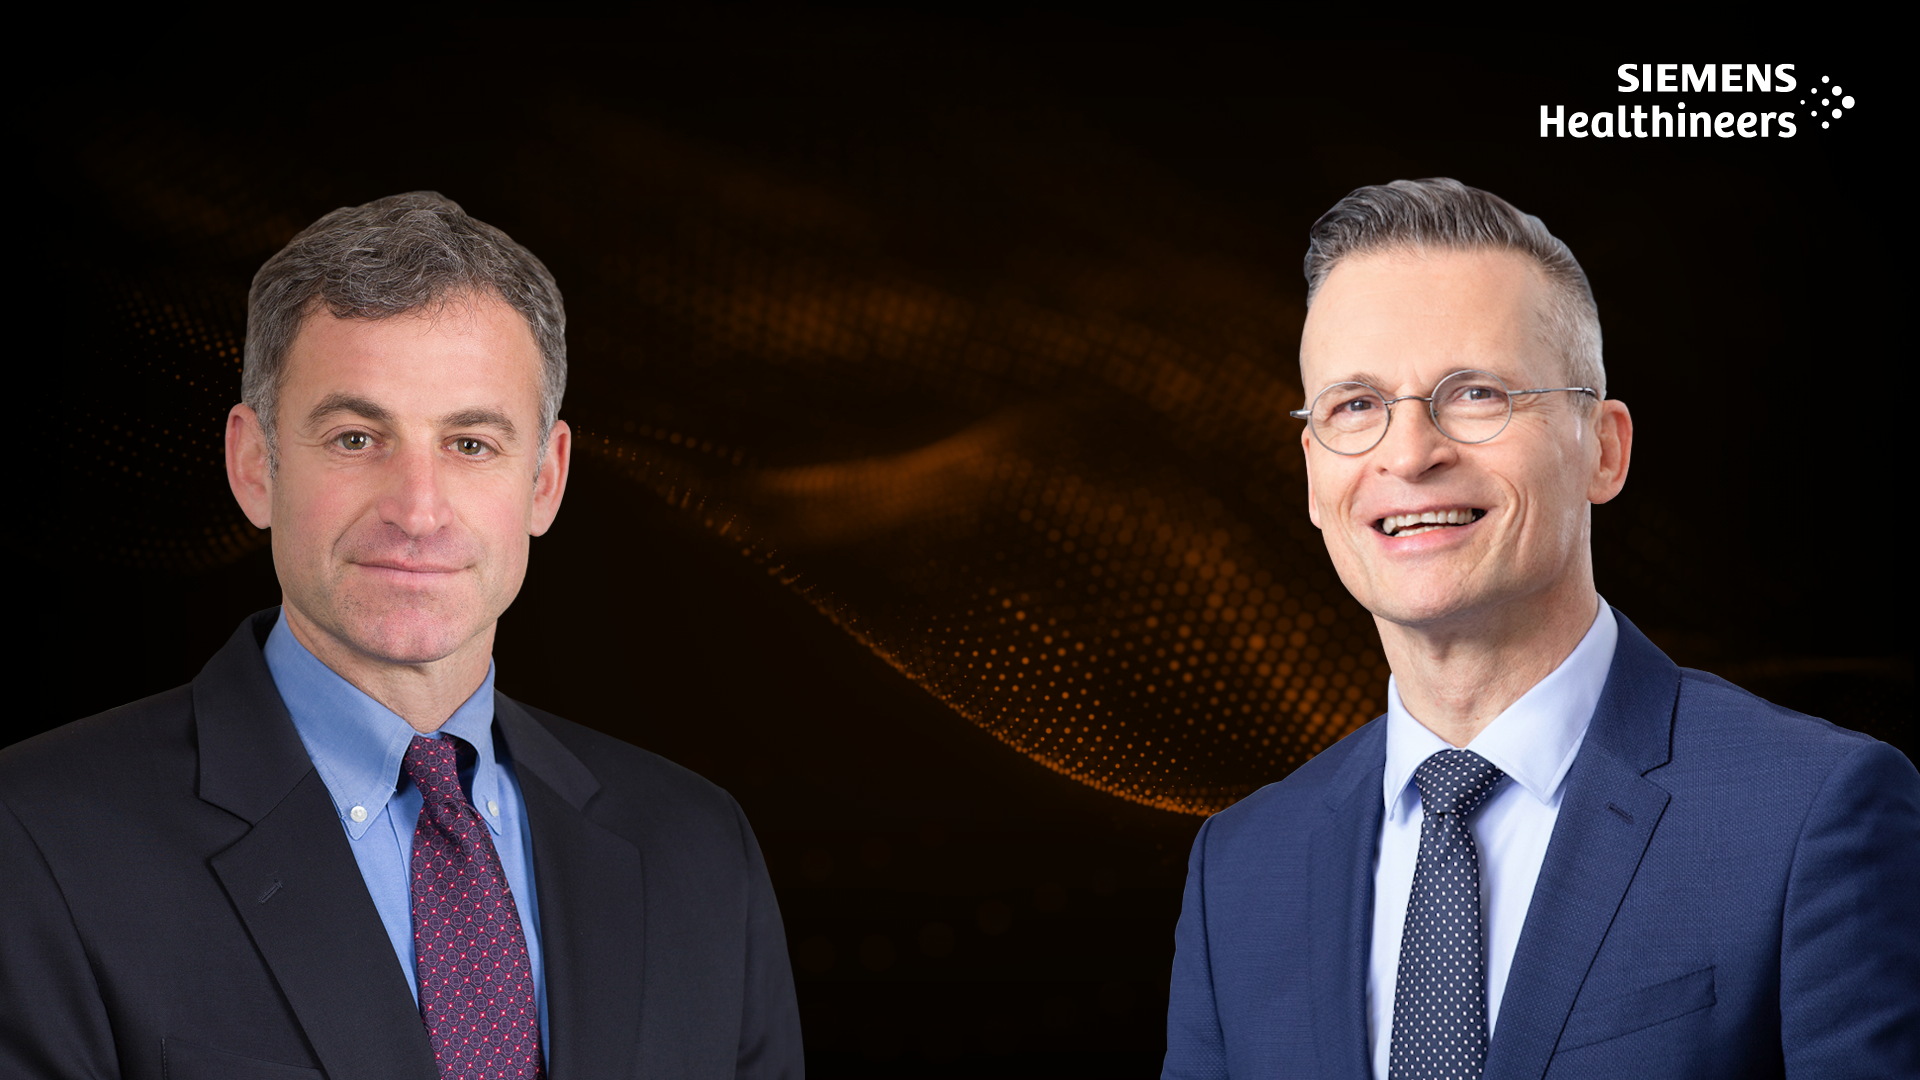 In this podcast, Howard B. Chrisman (l.) and Christoph Zindel discuss why healthcare systems will be stronger after the crisis